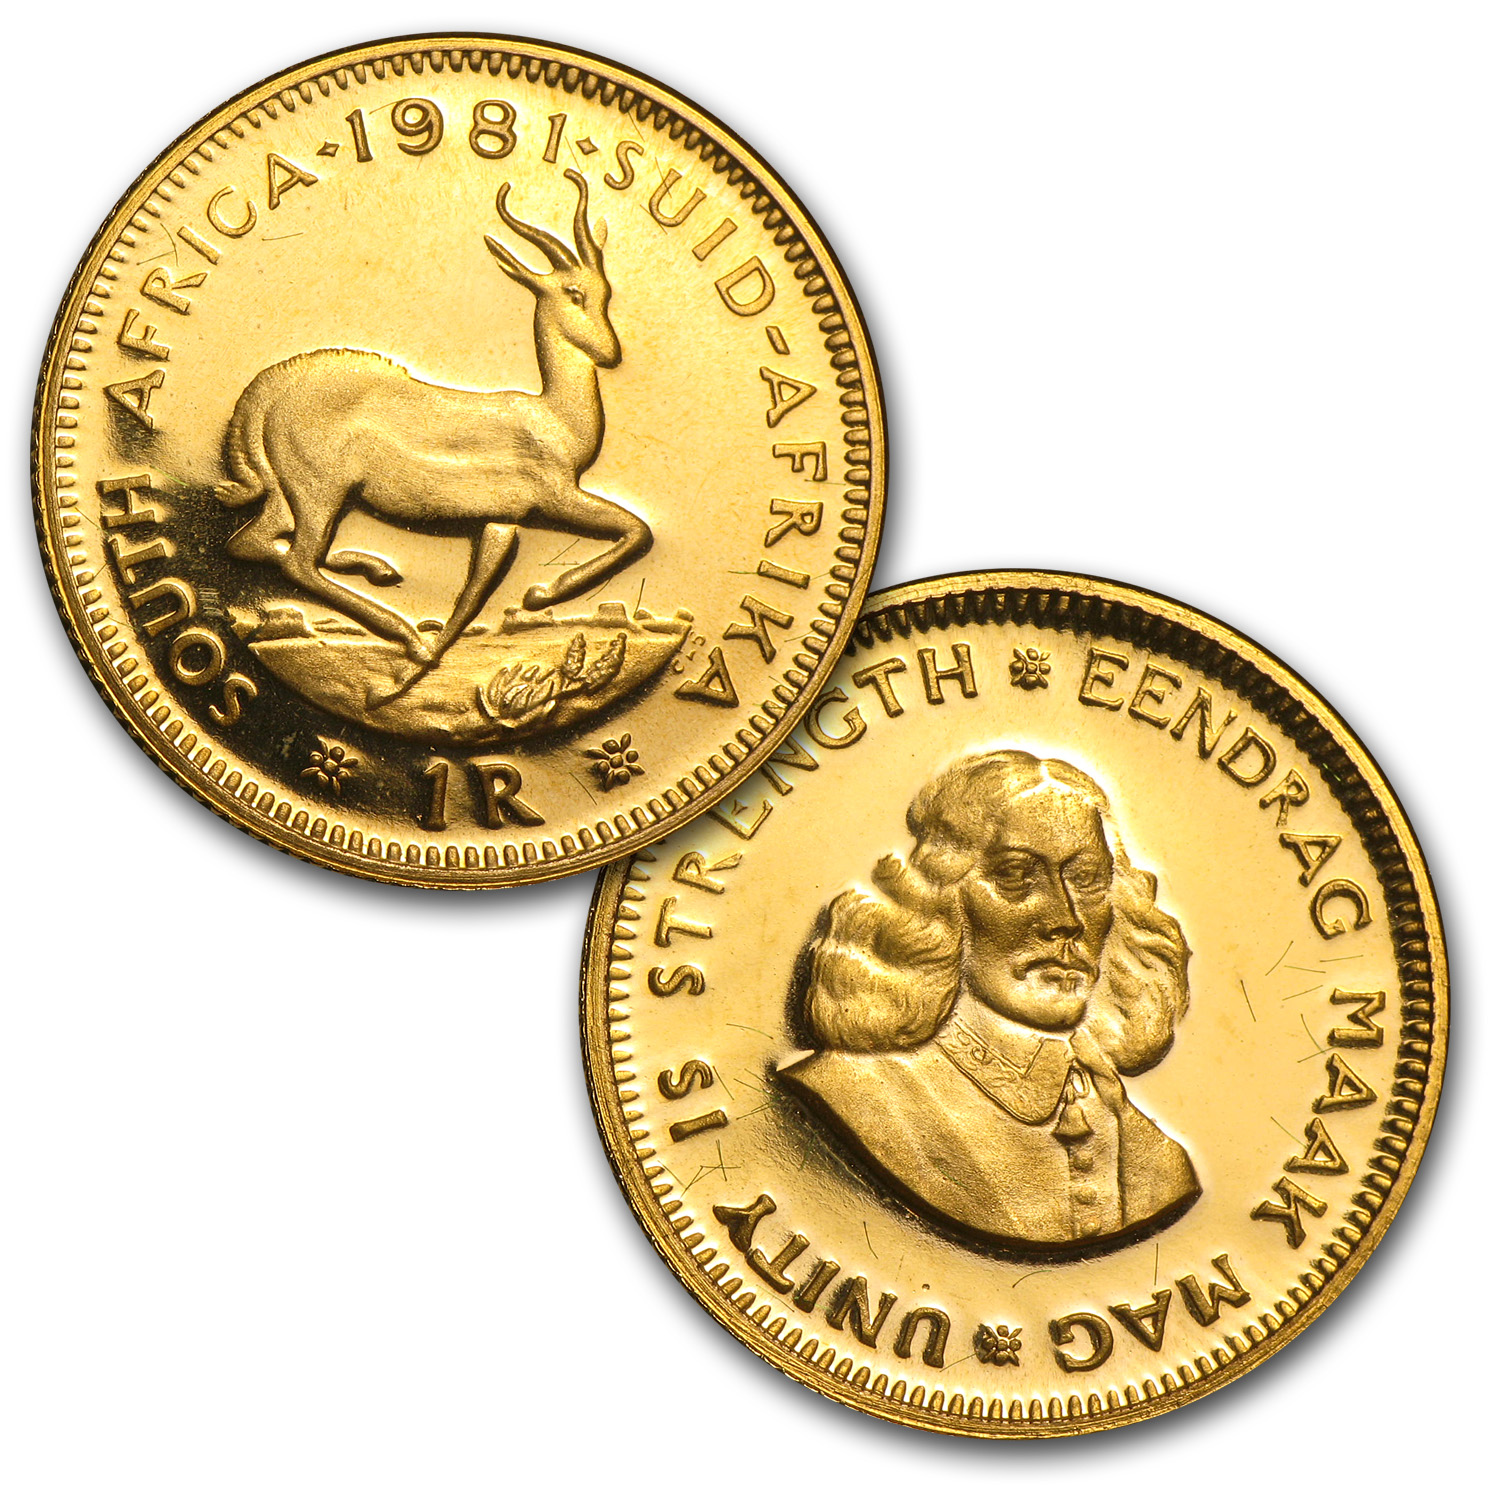 1981 South African Gold Proof Set (2-Coin)